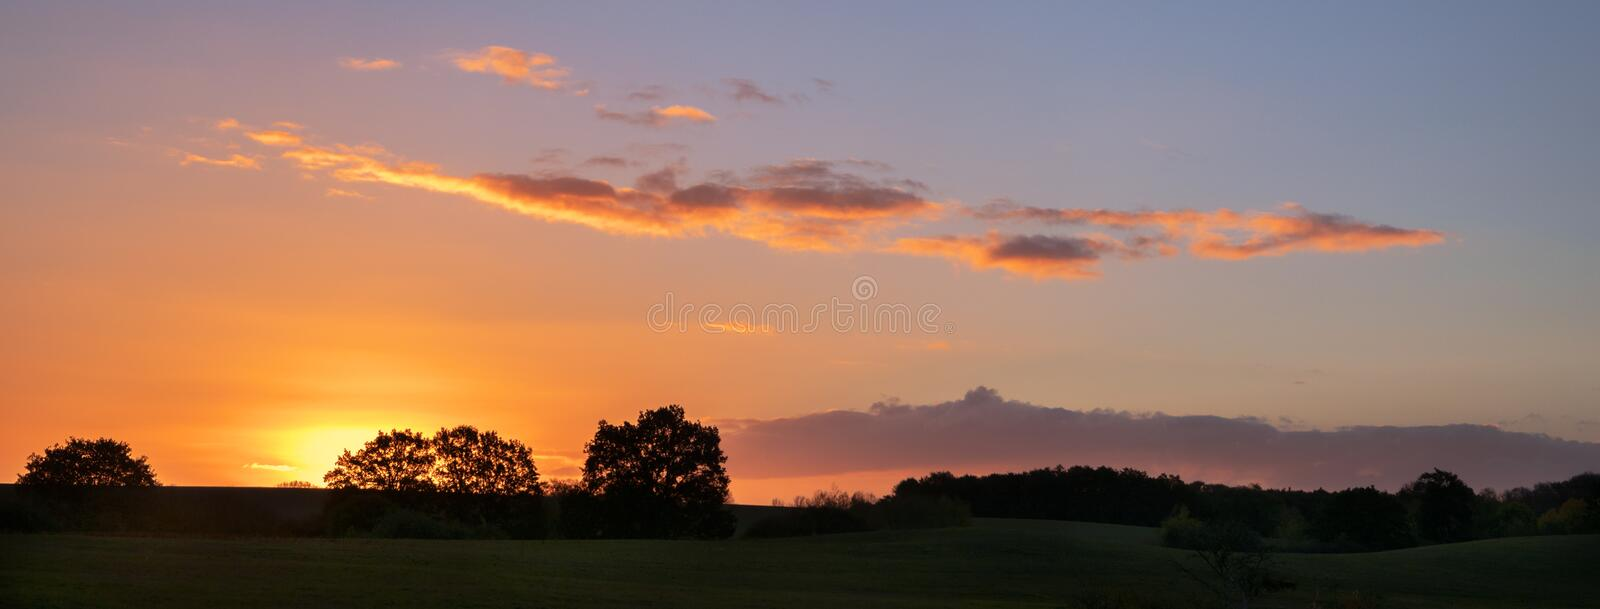 Sunset with orange clouds over a wide rural landscape with meadows and trees, panorama format with copy space stock photo